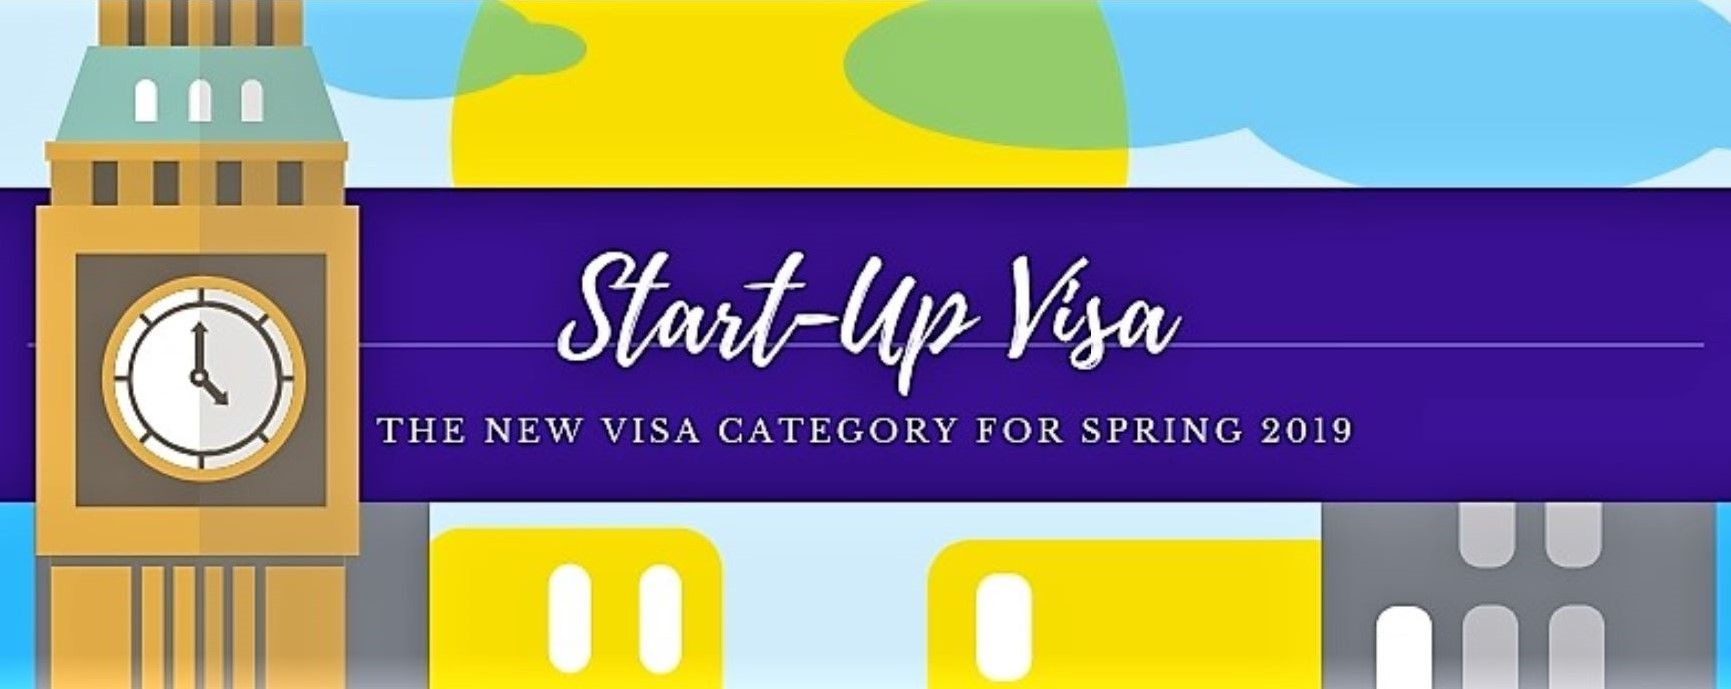 New Start-up Visa